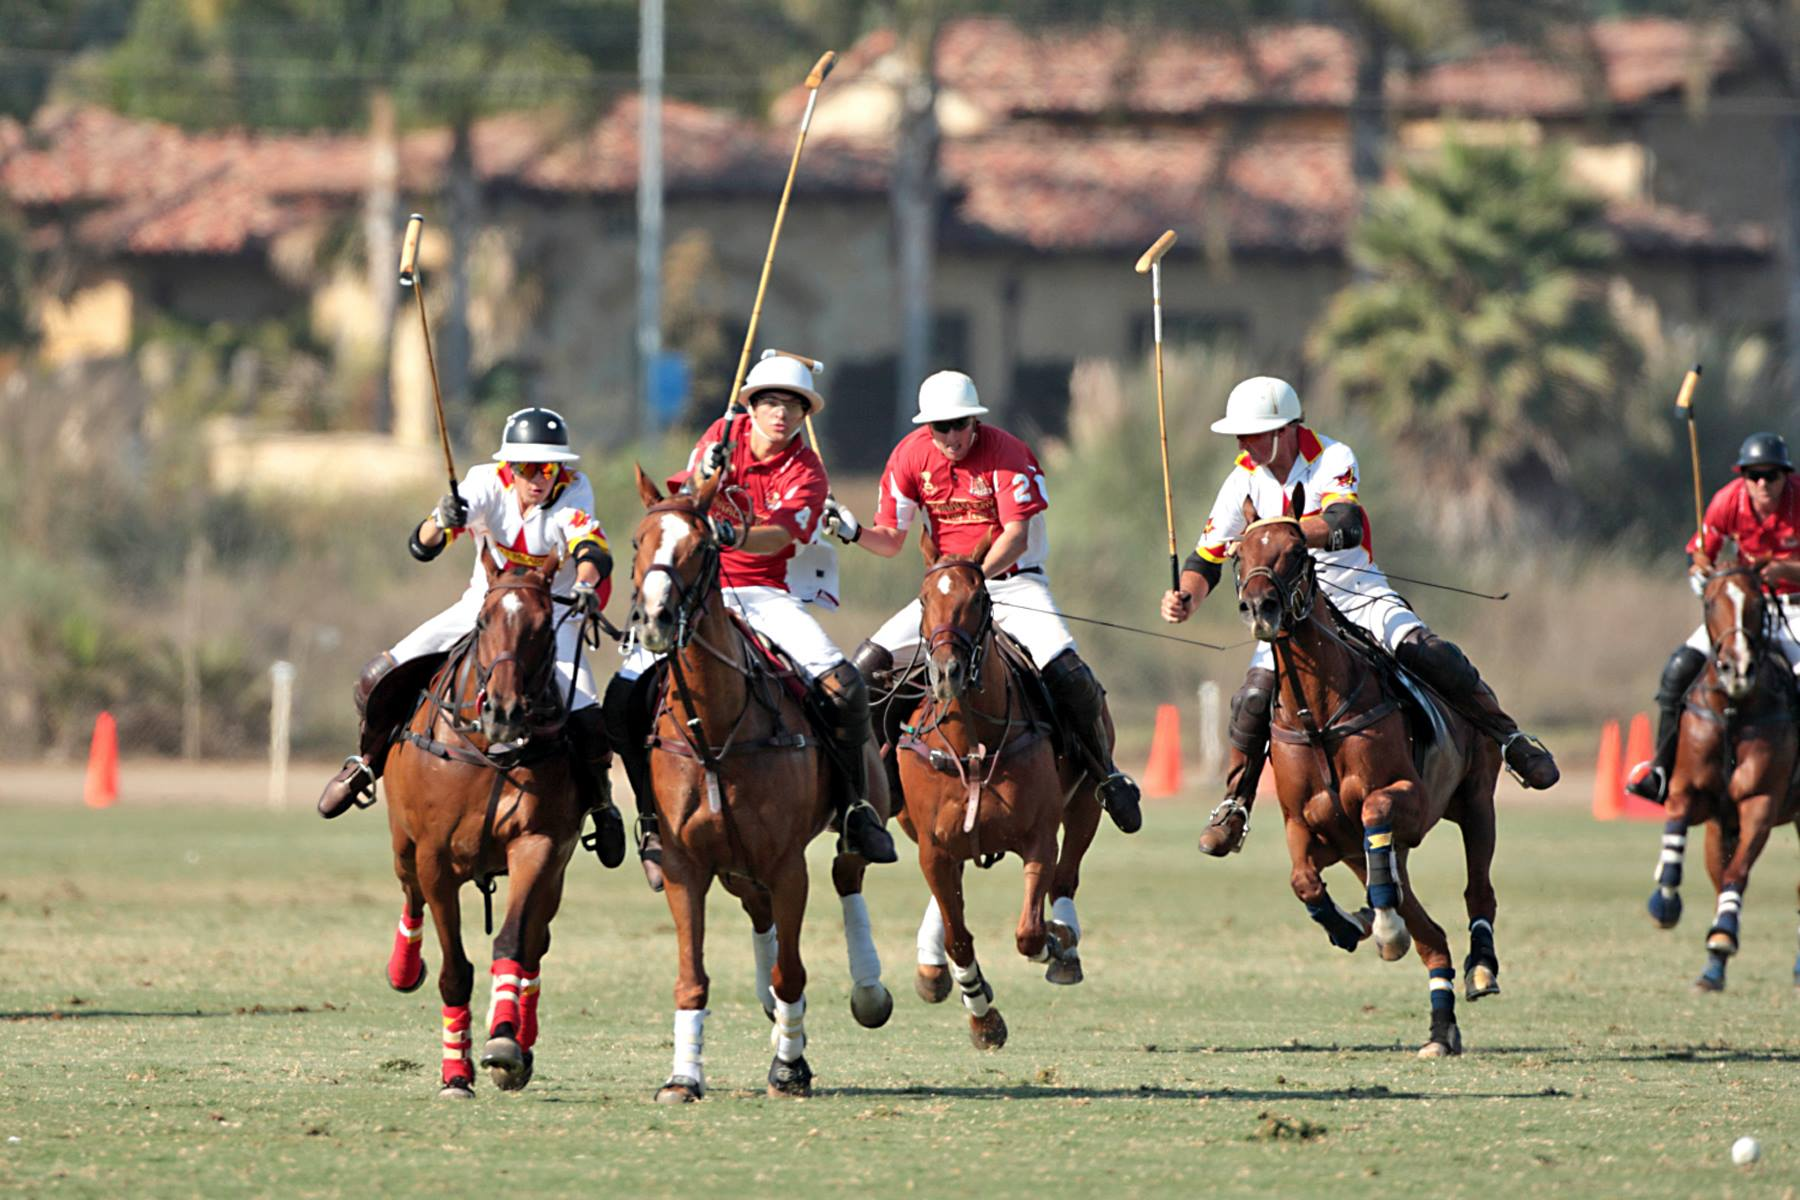 sd-polo-action-american-heart